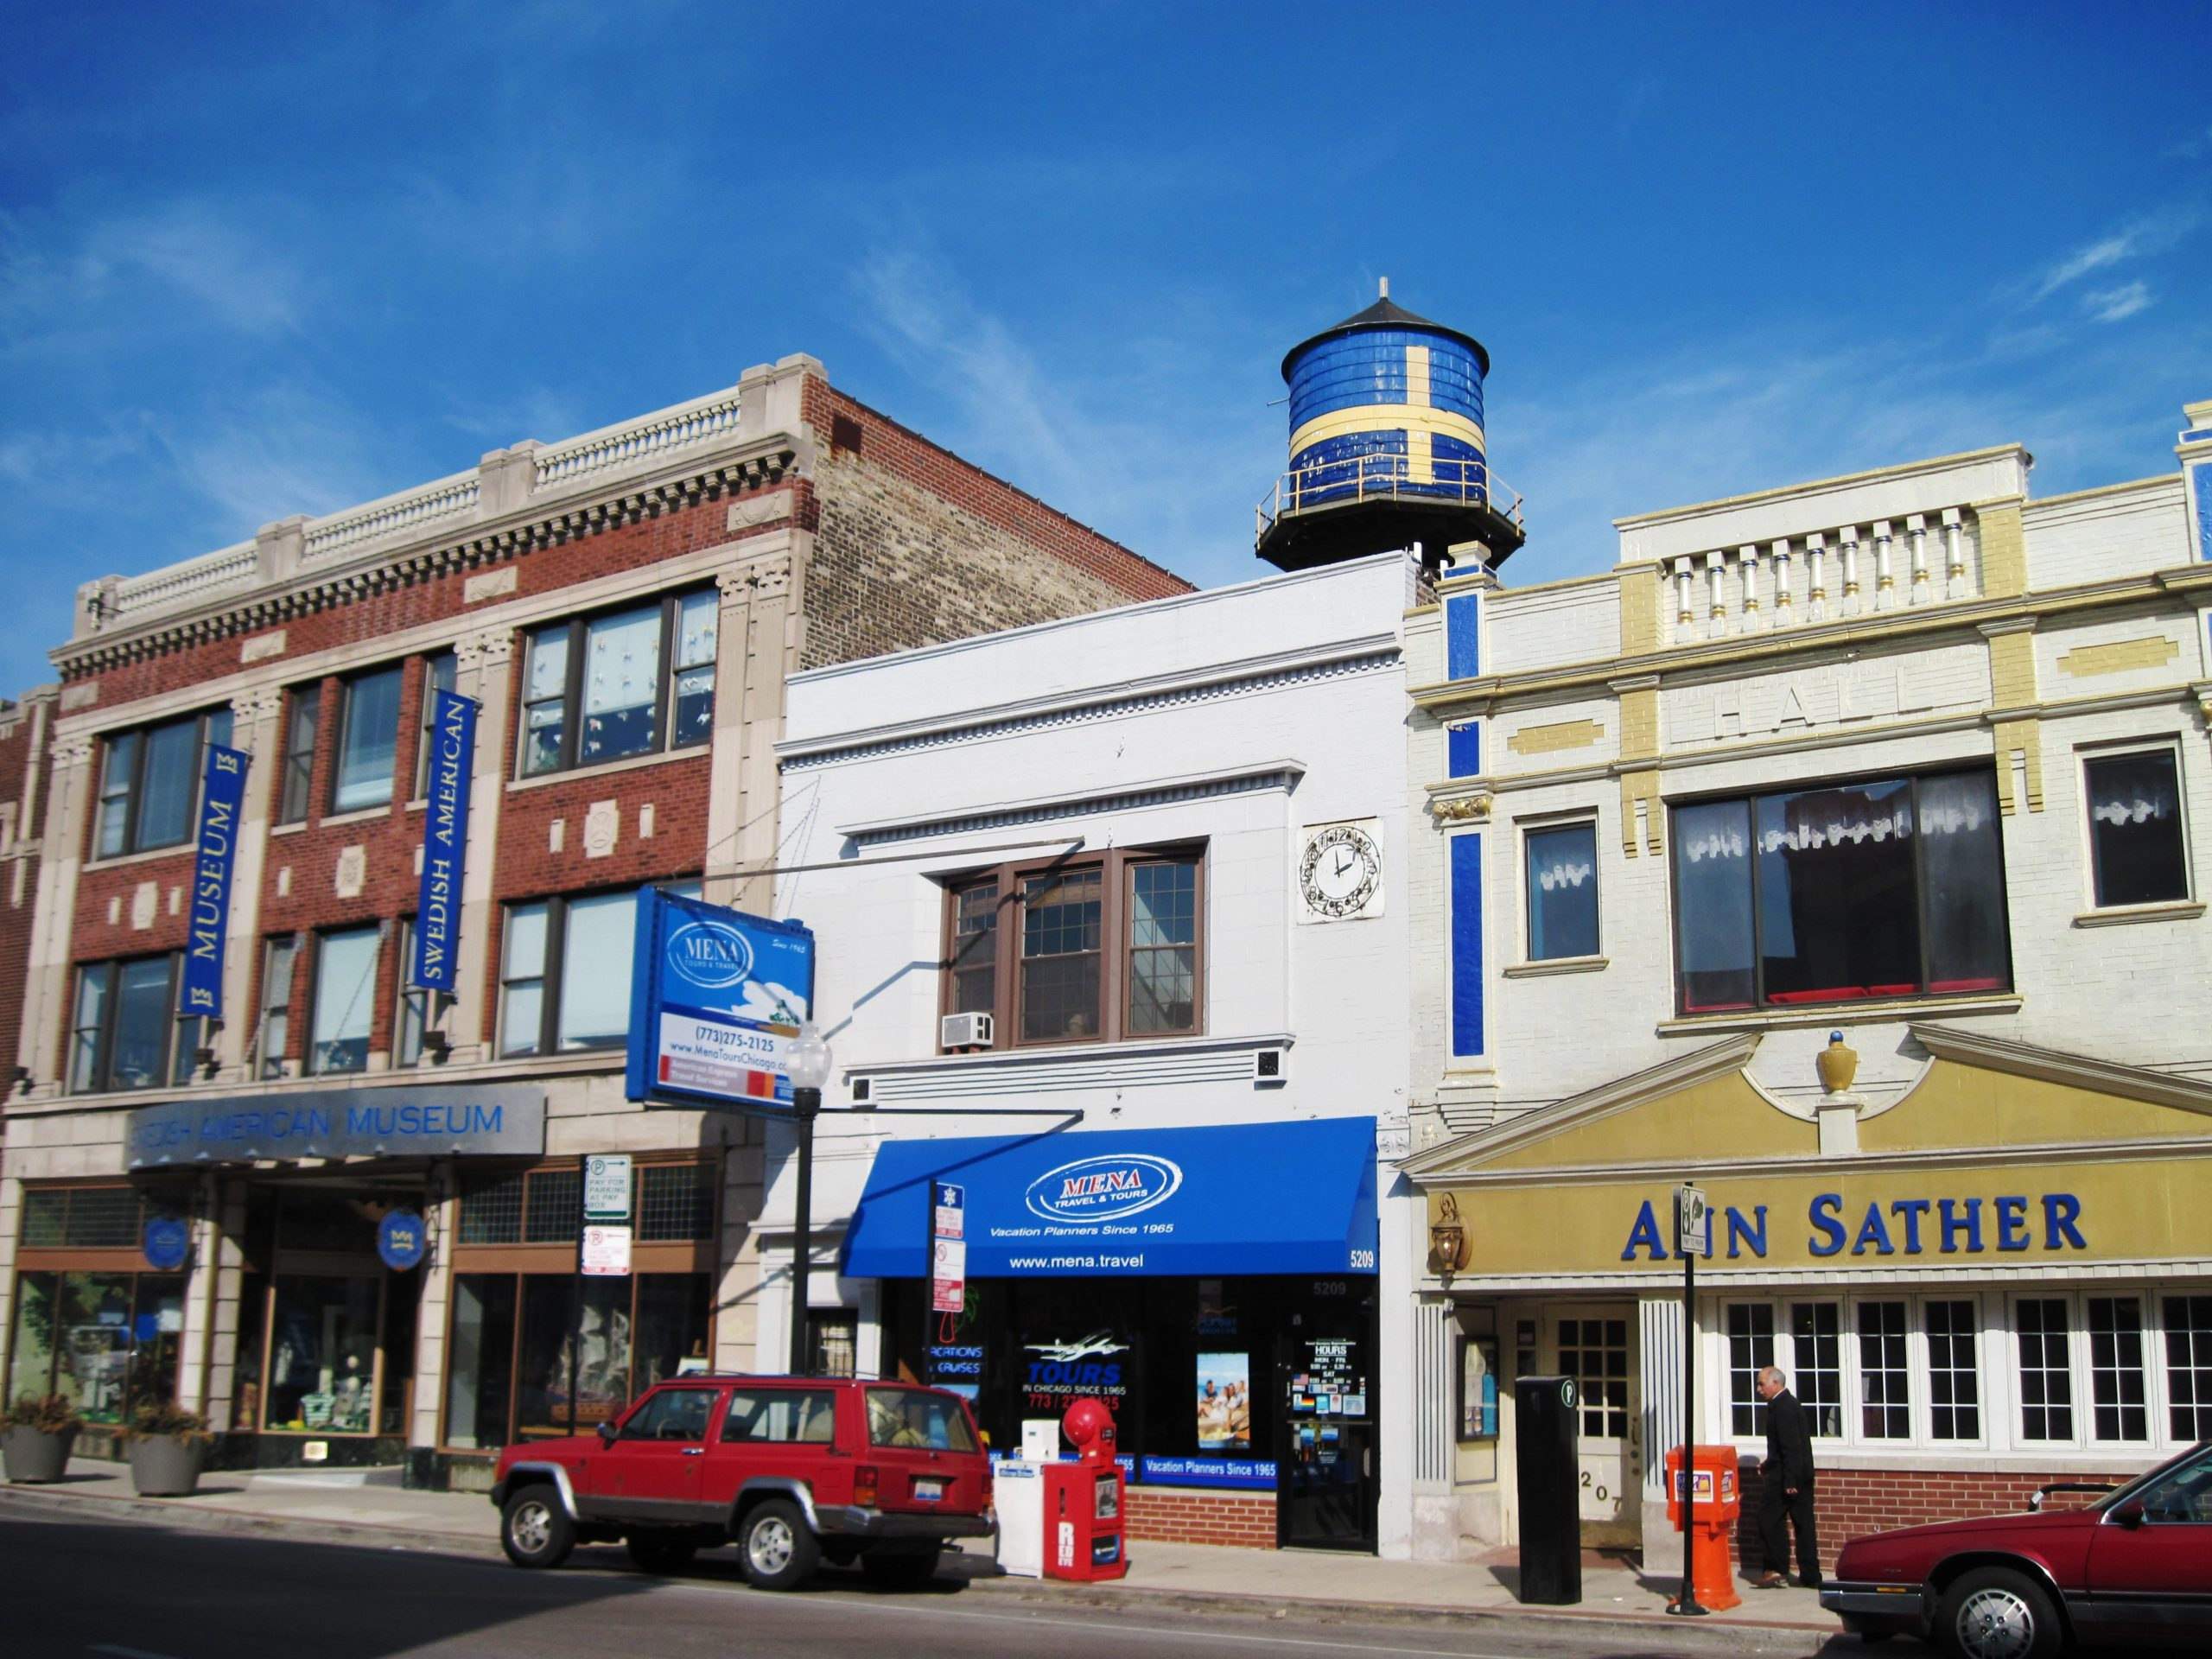 Small businesses and shops in Andersonville, Chicago